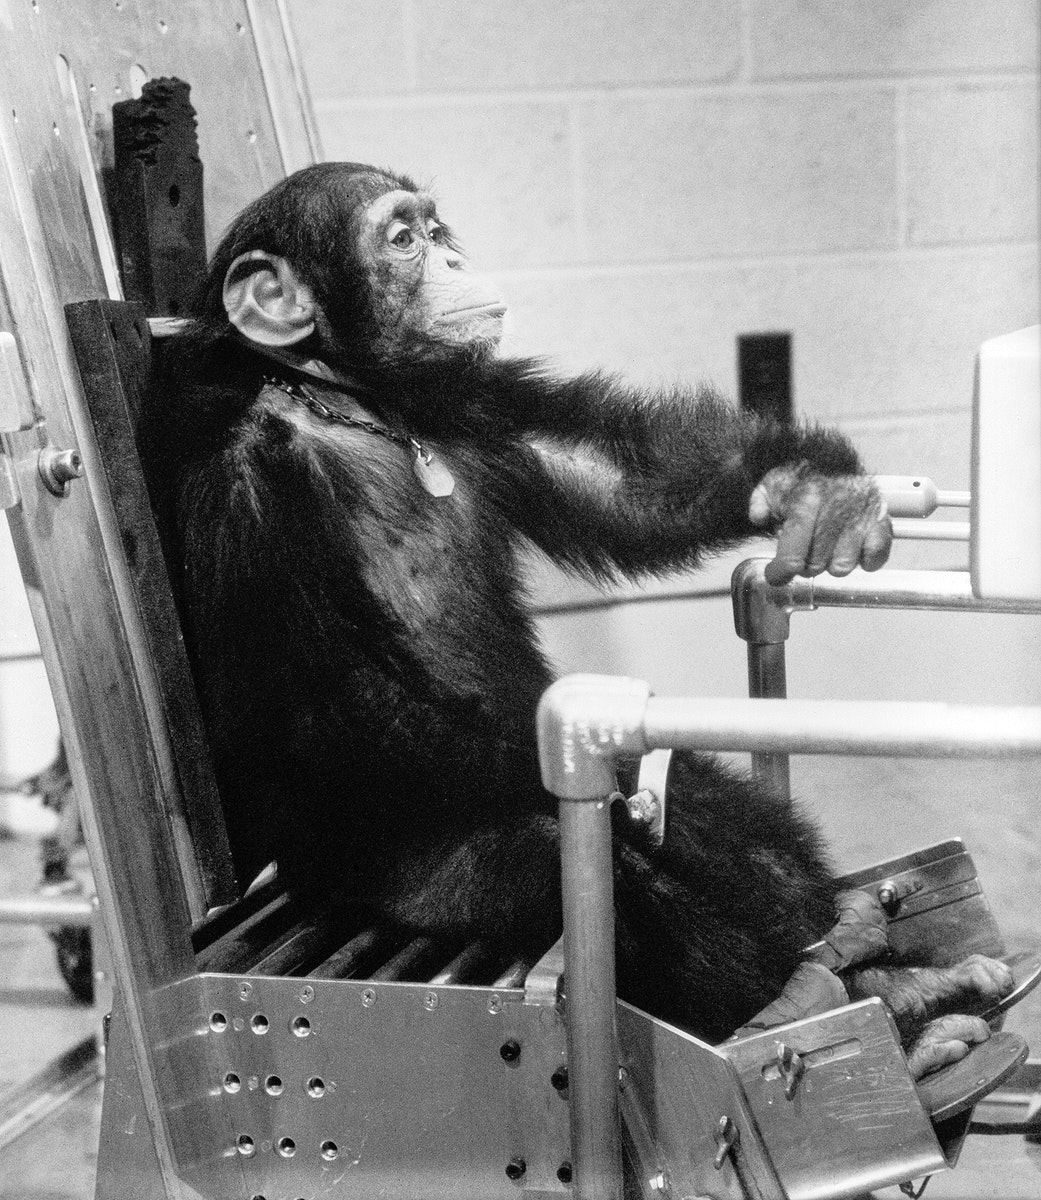 """Chimpanzee """"Ham"""" during preflight activity with one of his handlers prior to the Mercury-Redstone 2 (MR-2) test flight which…"""